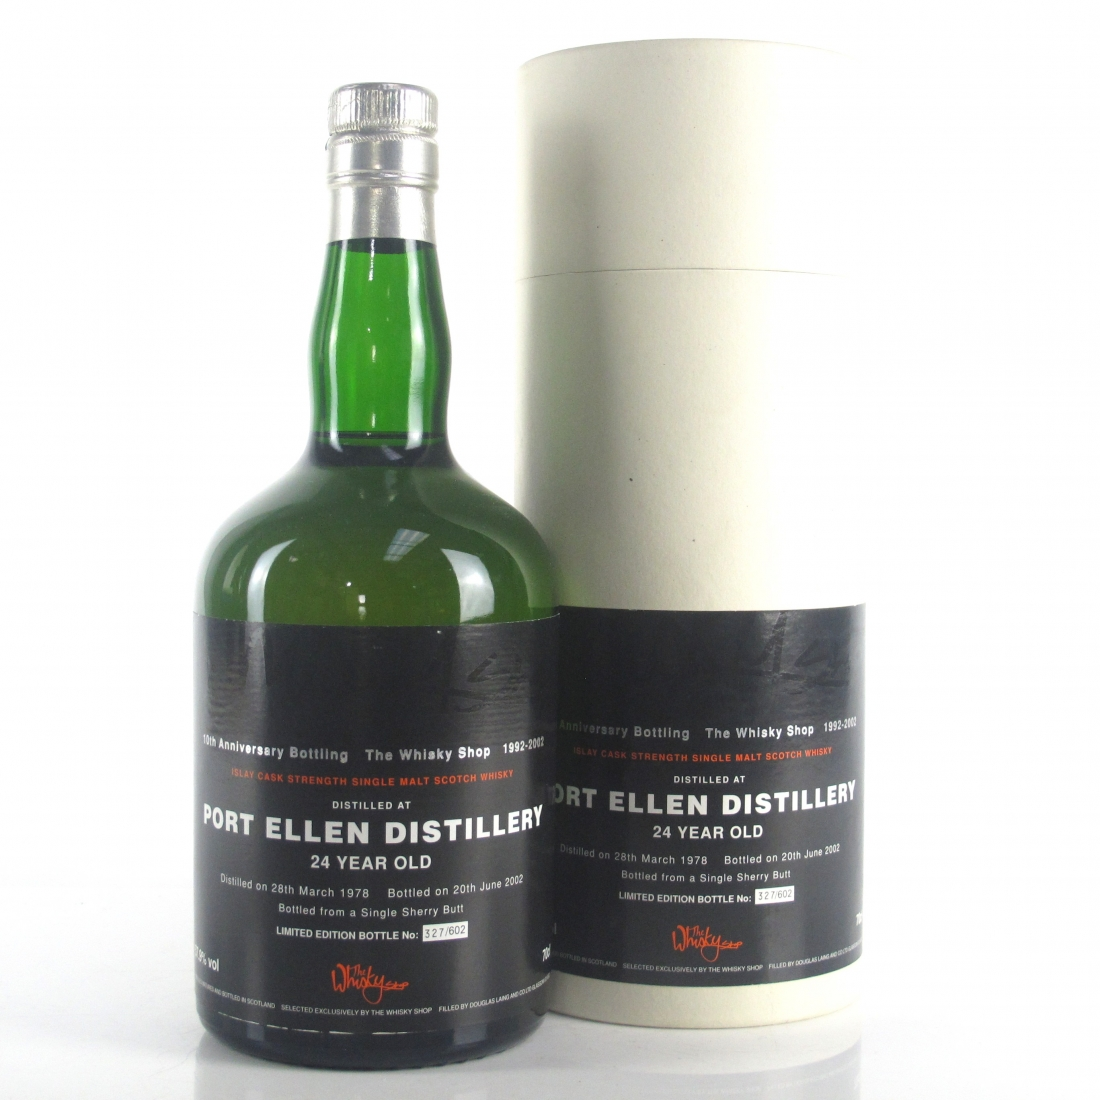 Port Ellen 1978 Whisky Shop 24 Year Old